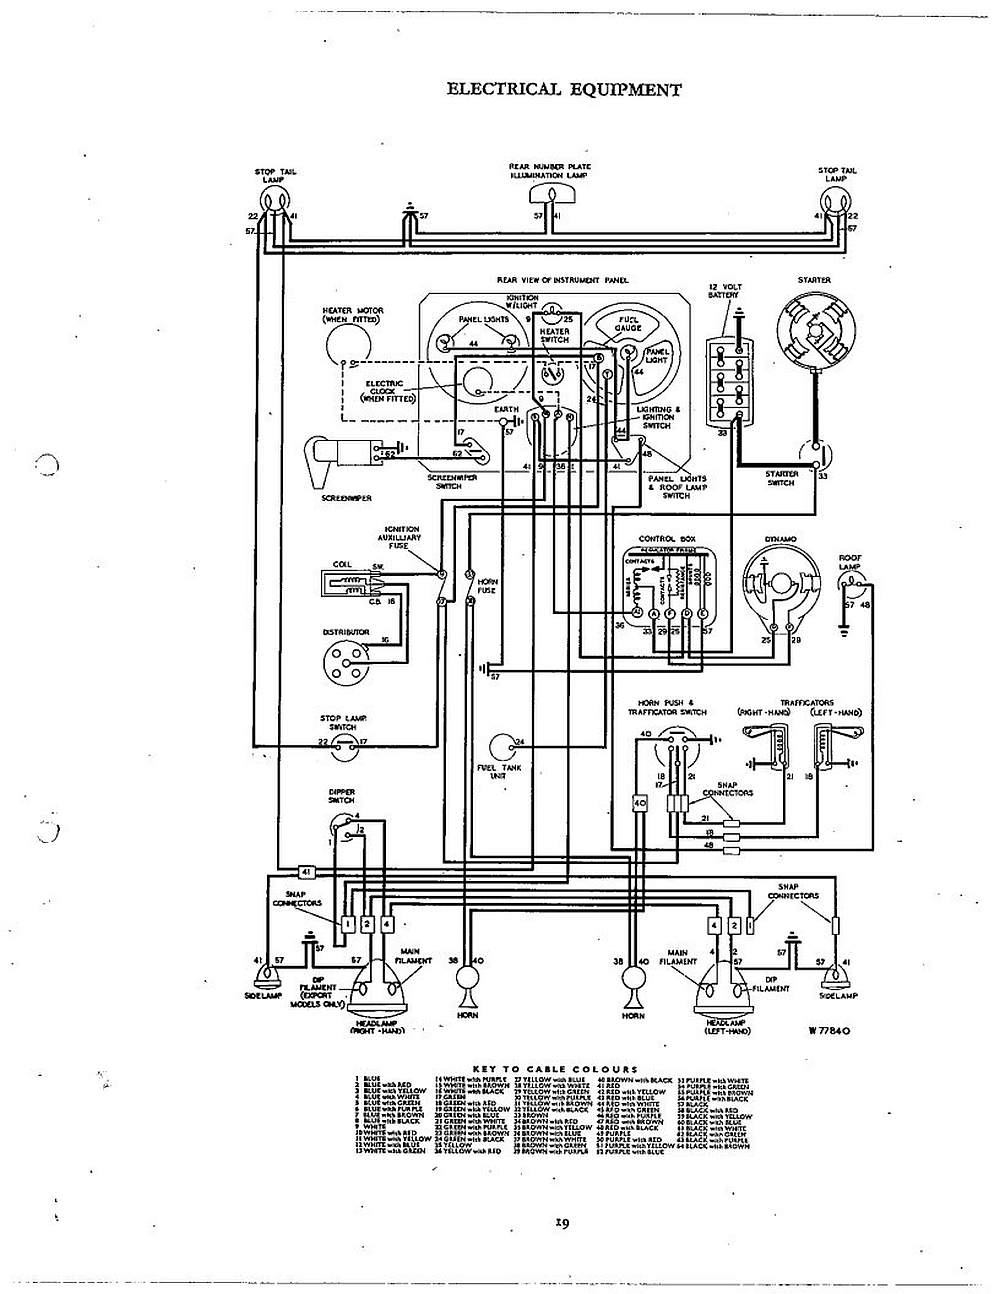 1971 nova wiring schematic wiring library 1963 Chevy Nova Wiring Diagram triumph wiring diagrams archive of automotive wiring diagram \\u2022 triumph tr6 logo triumph tr6 wiring